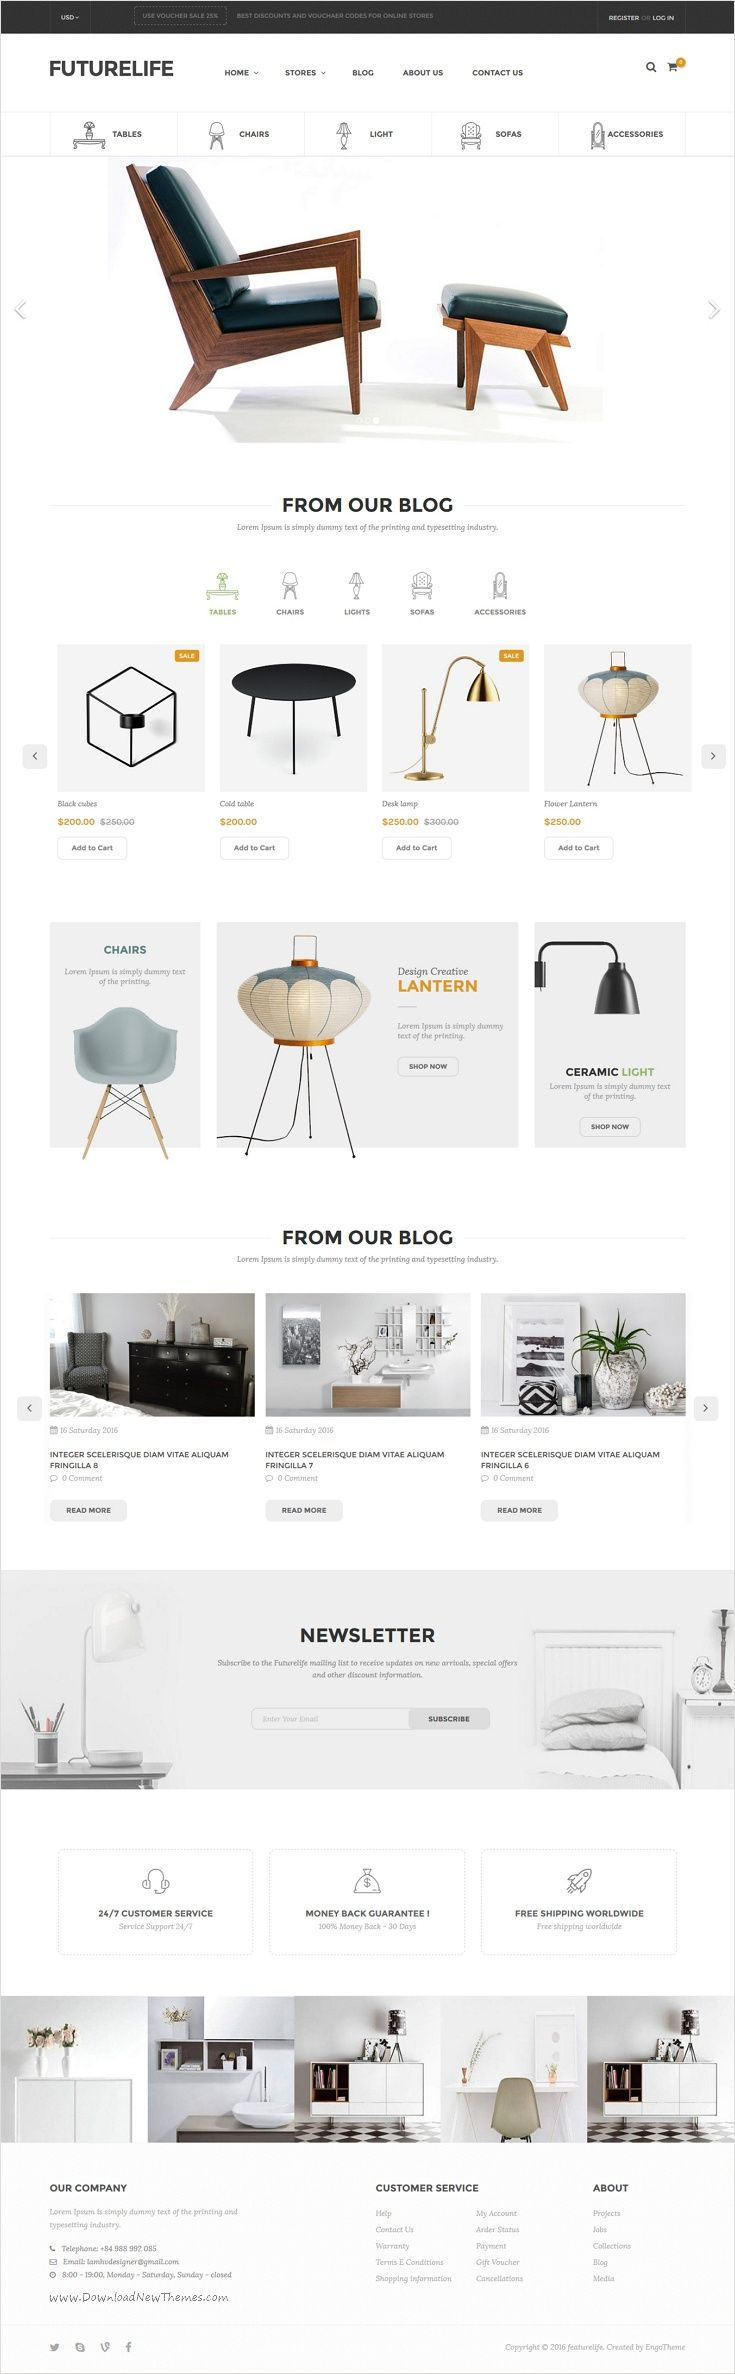 Futurelife is modern design elegant @shopify theme for multipurpose #furniture #shop eCommerce website with 5 different homepage layouts download now➩ https://themeforest.net/item/futurelife-ecommerce-responsive-shopify-theme/17387835?ref=Datasata